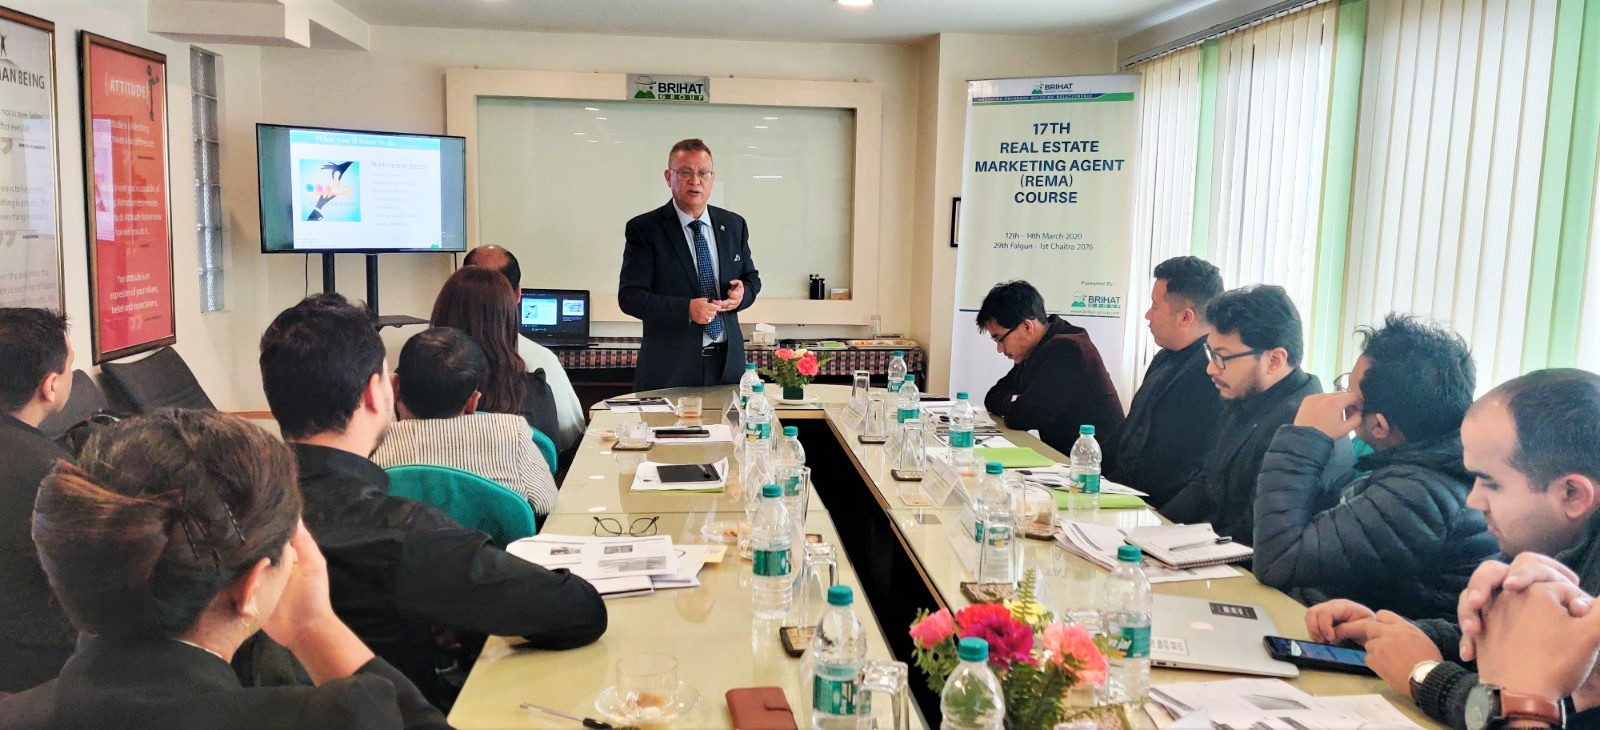 Real Estate Marketing Agent Course (REMA Course) in Nepal